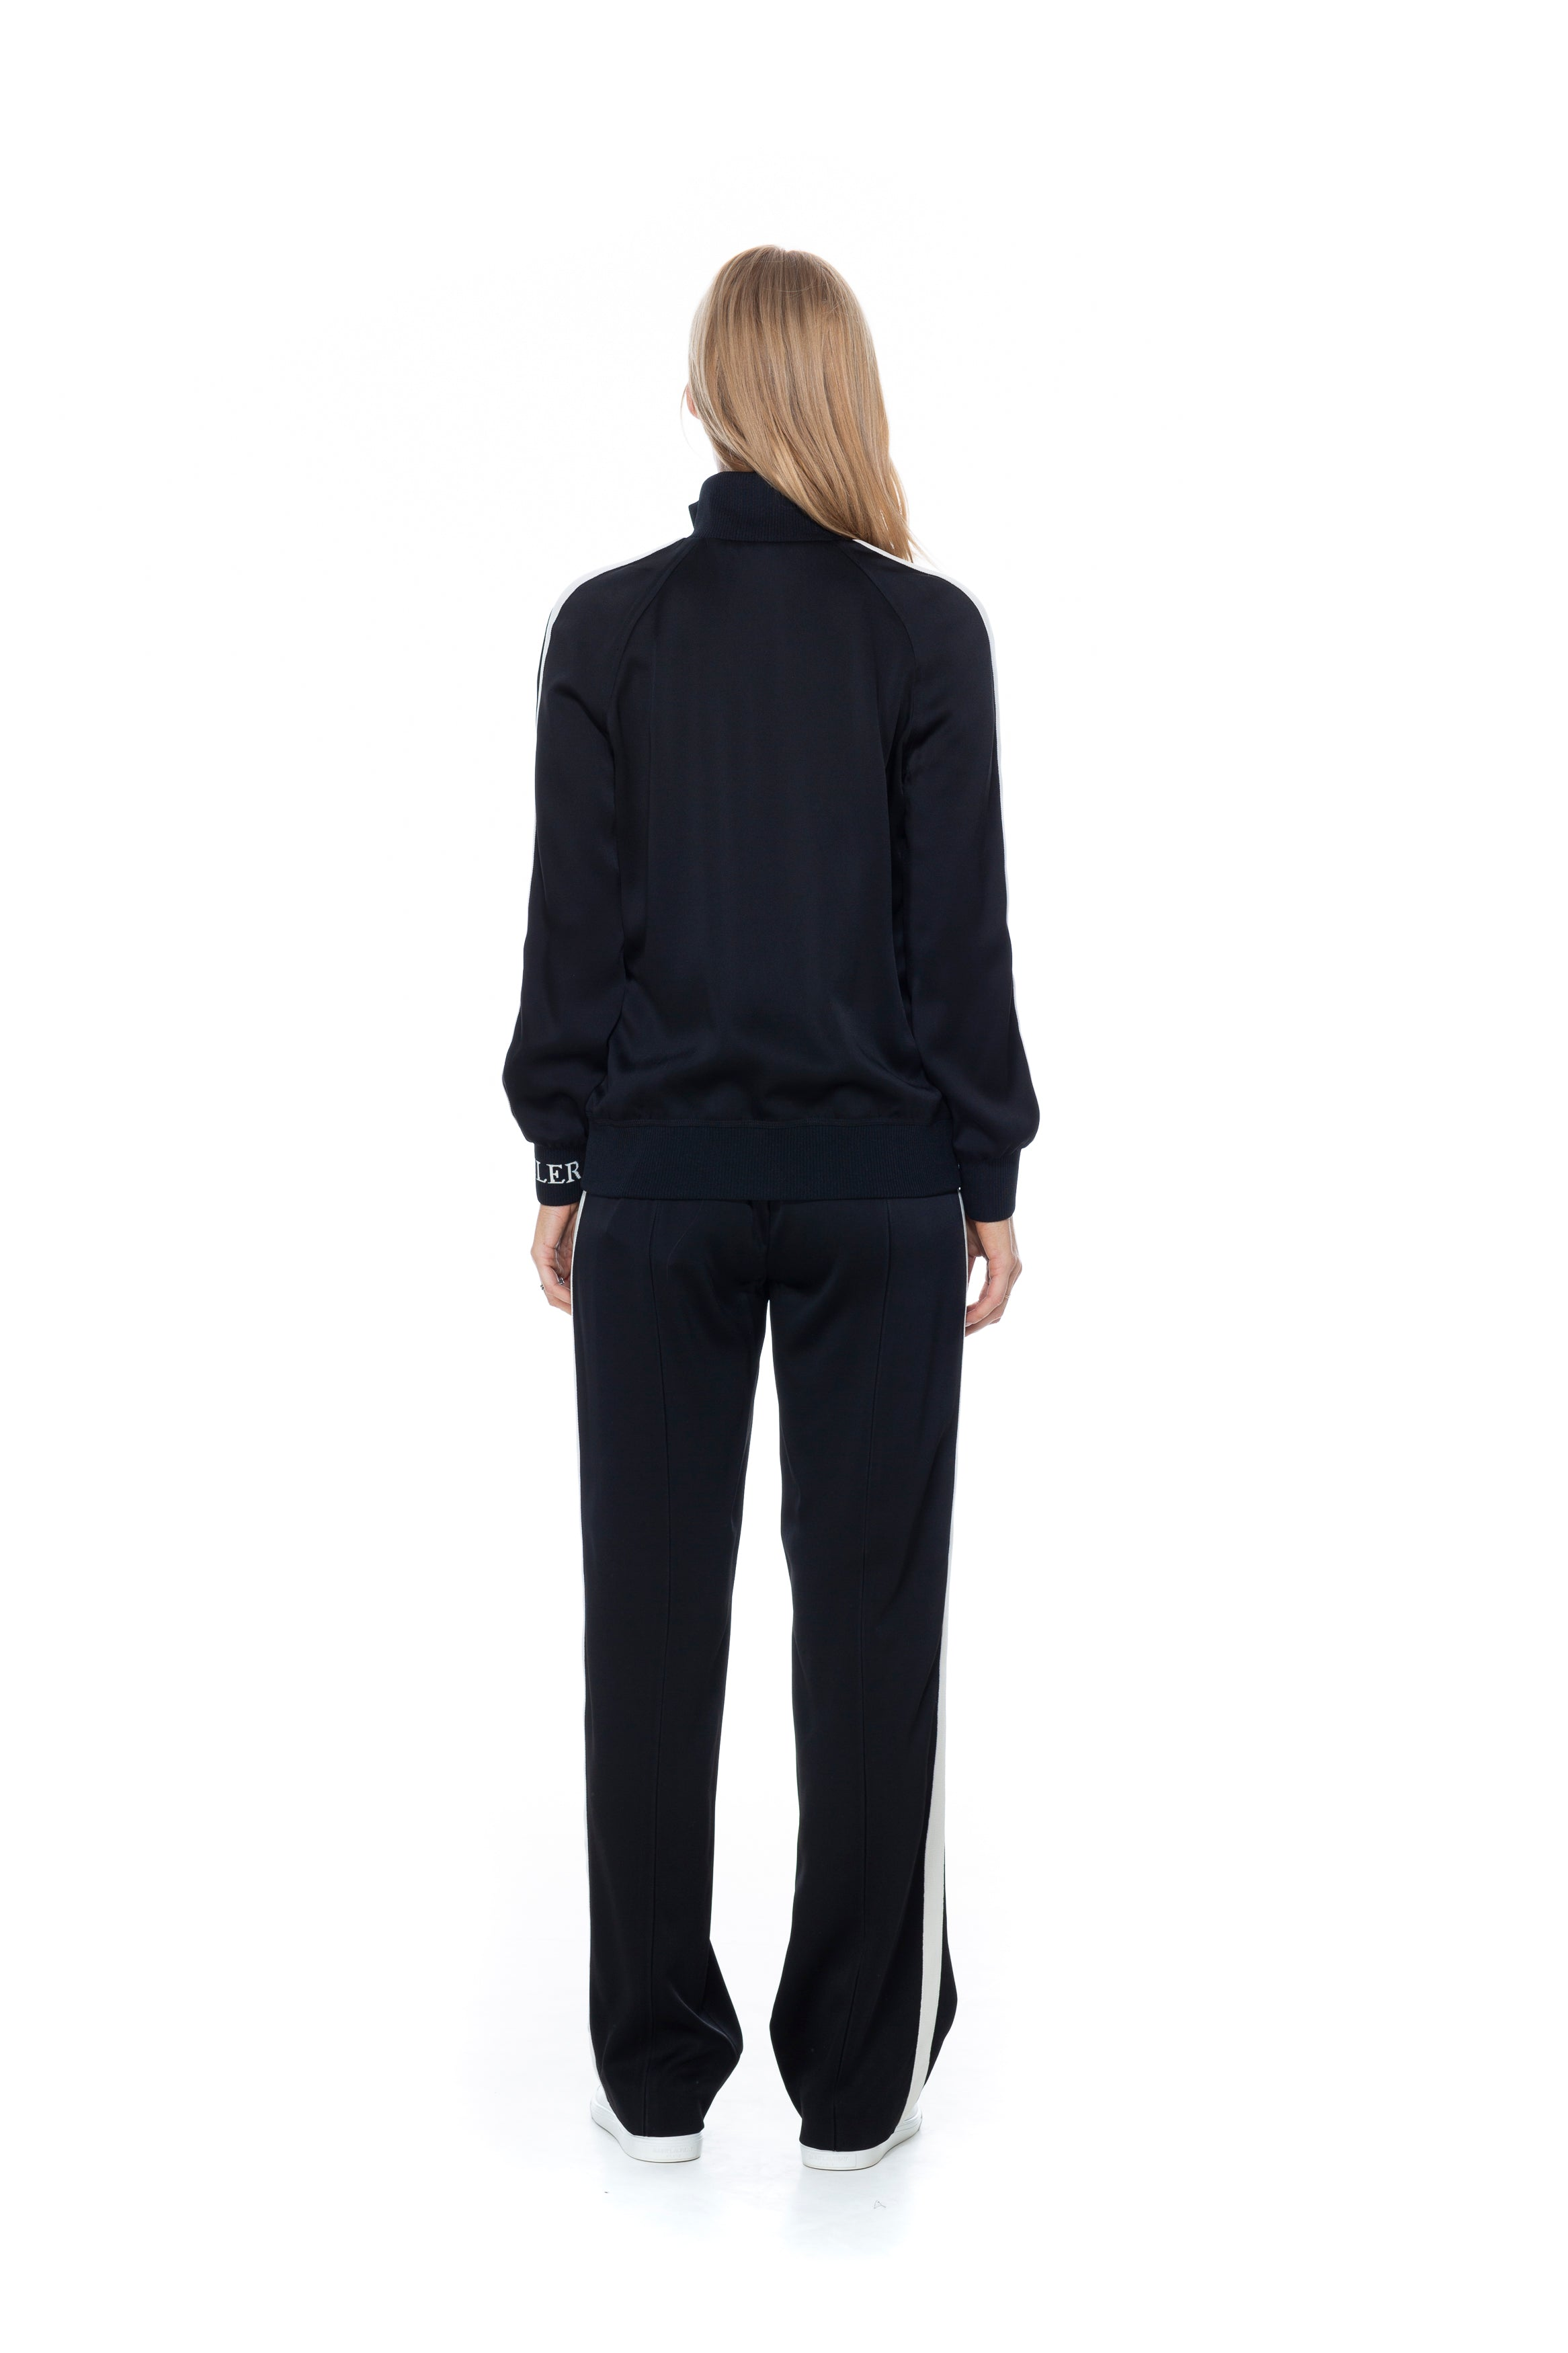 CASUAL TROUSER BLACK